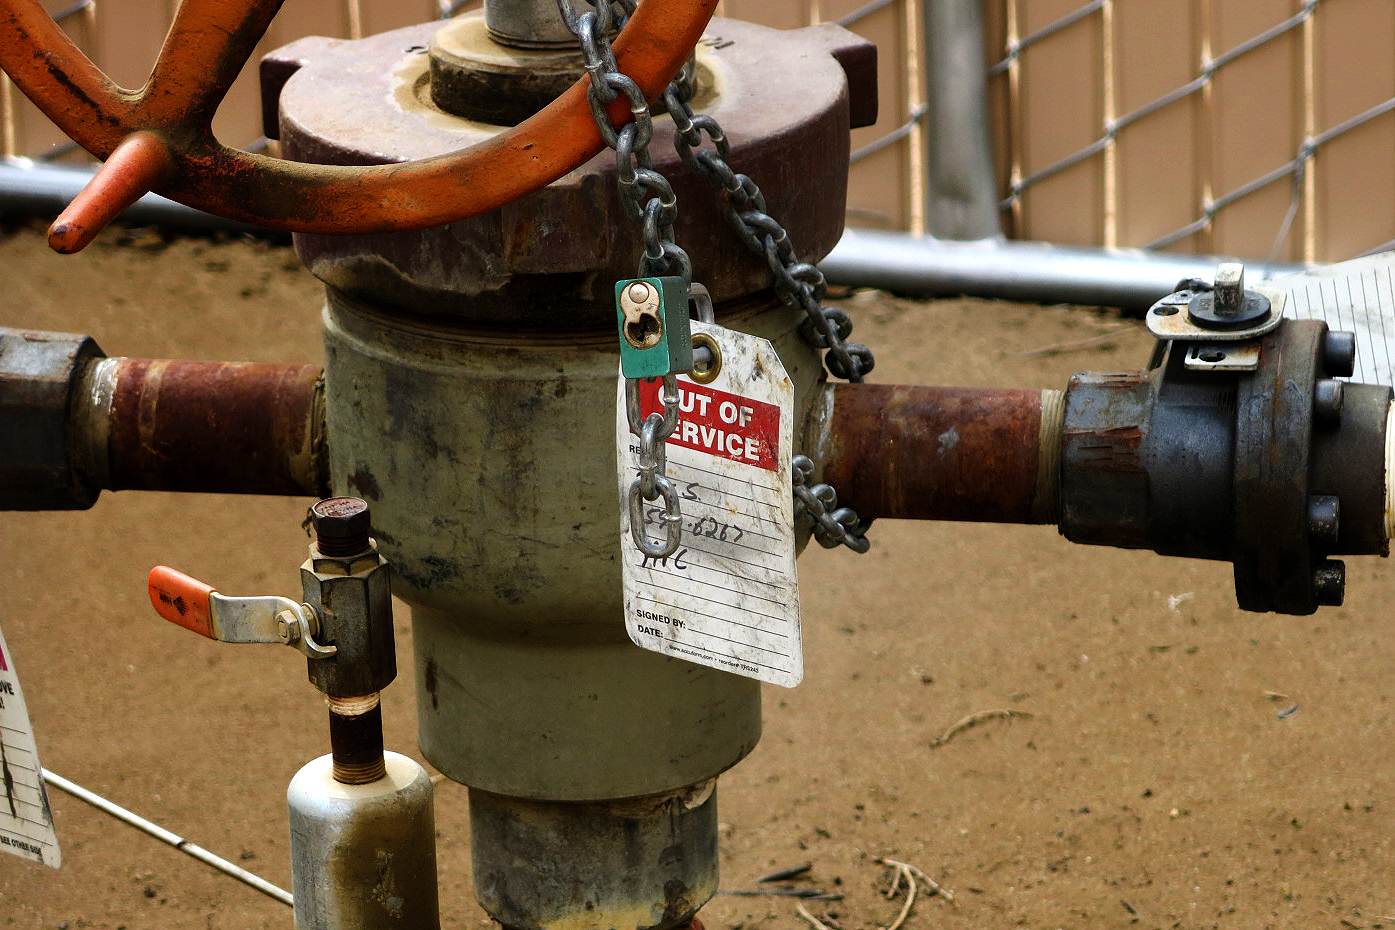 <p>Investigators say natural gas leaked into the soil from an underground flowline in Firestone believed to have been abandoned, but not properly capped. The well attached to that flowline sits inactive today.</p>